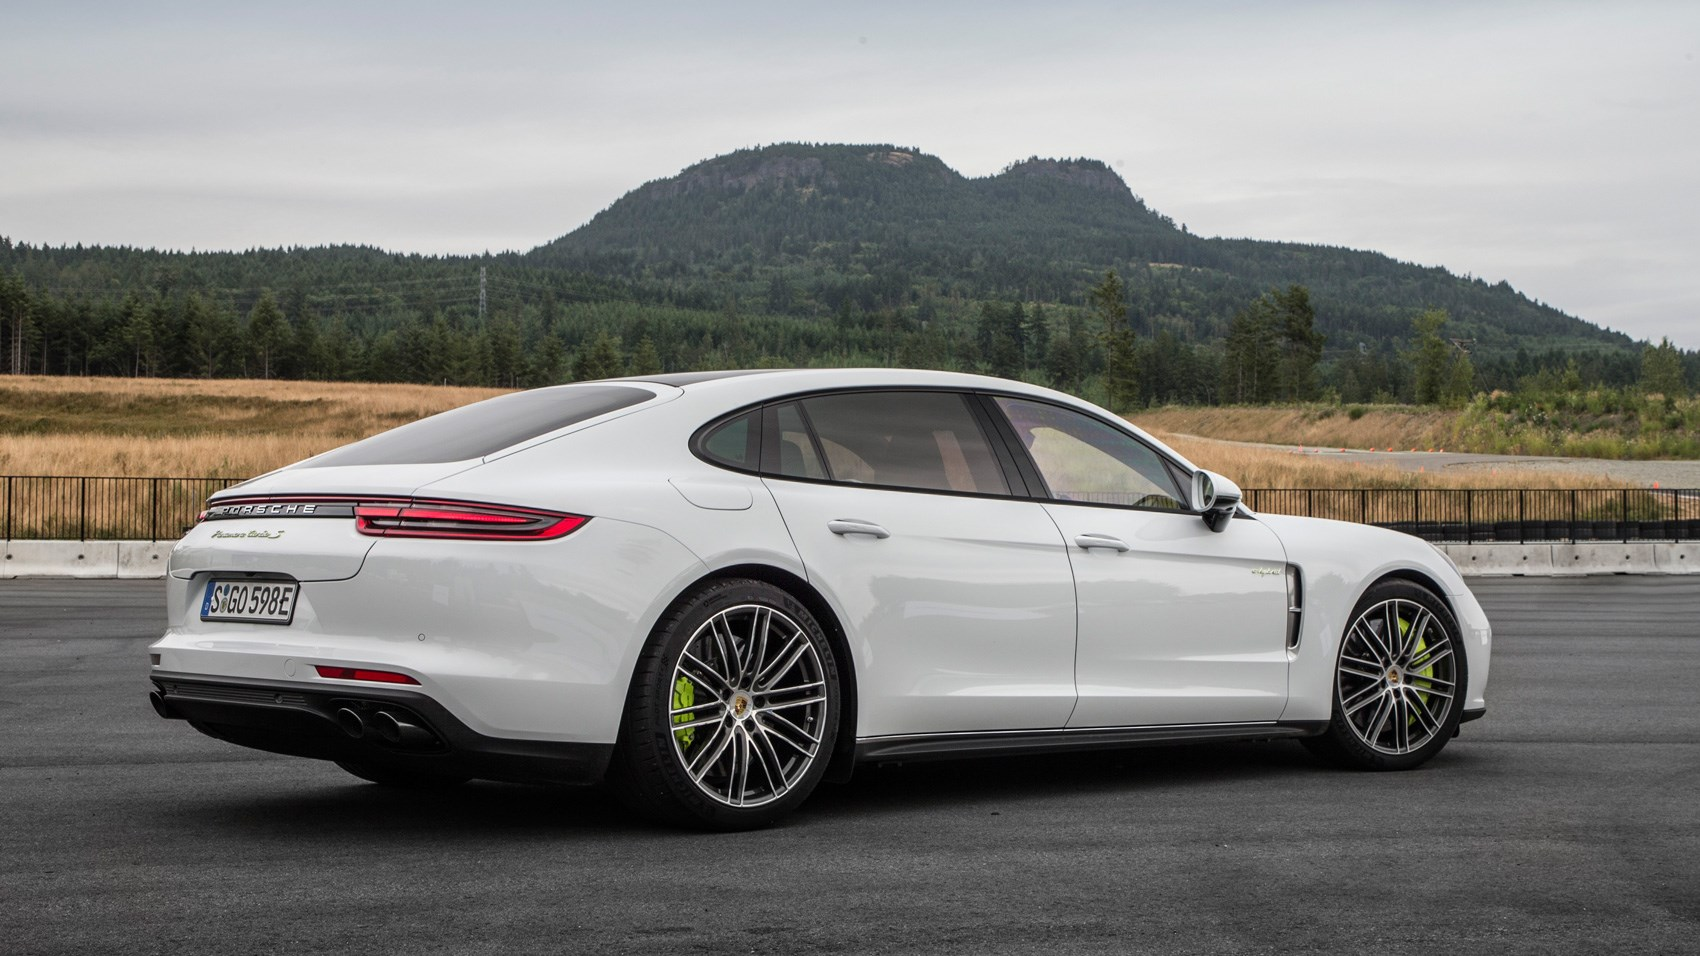 Porsche Panamera Turbo S E Hybrid 2017 Review Car Magazine